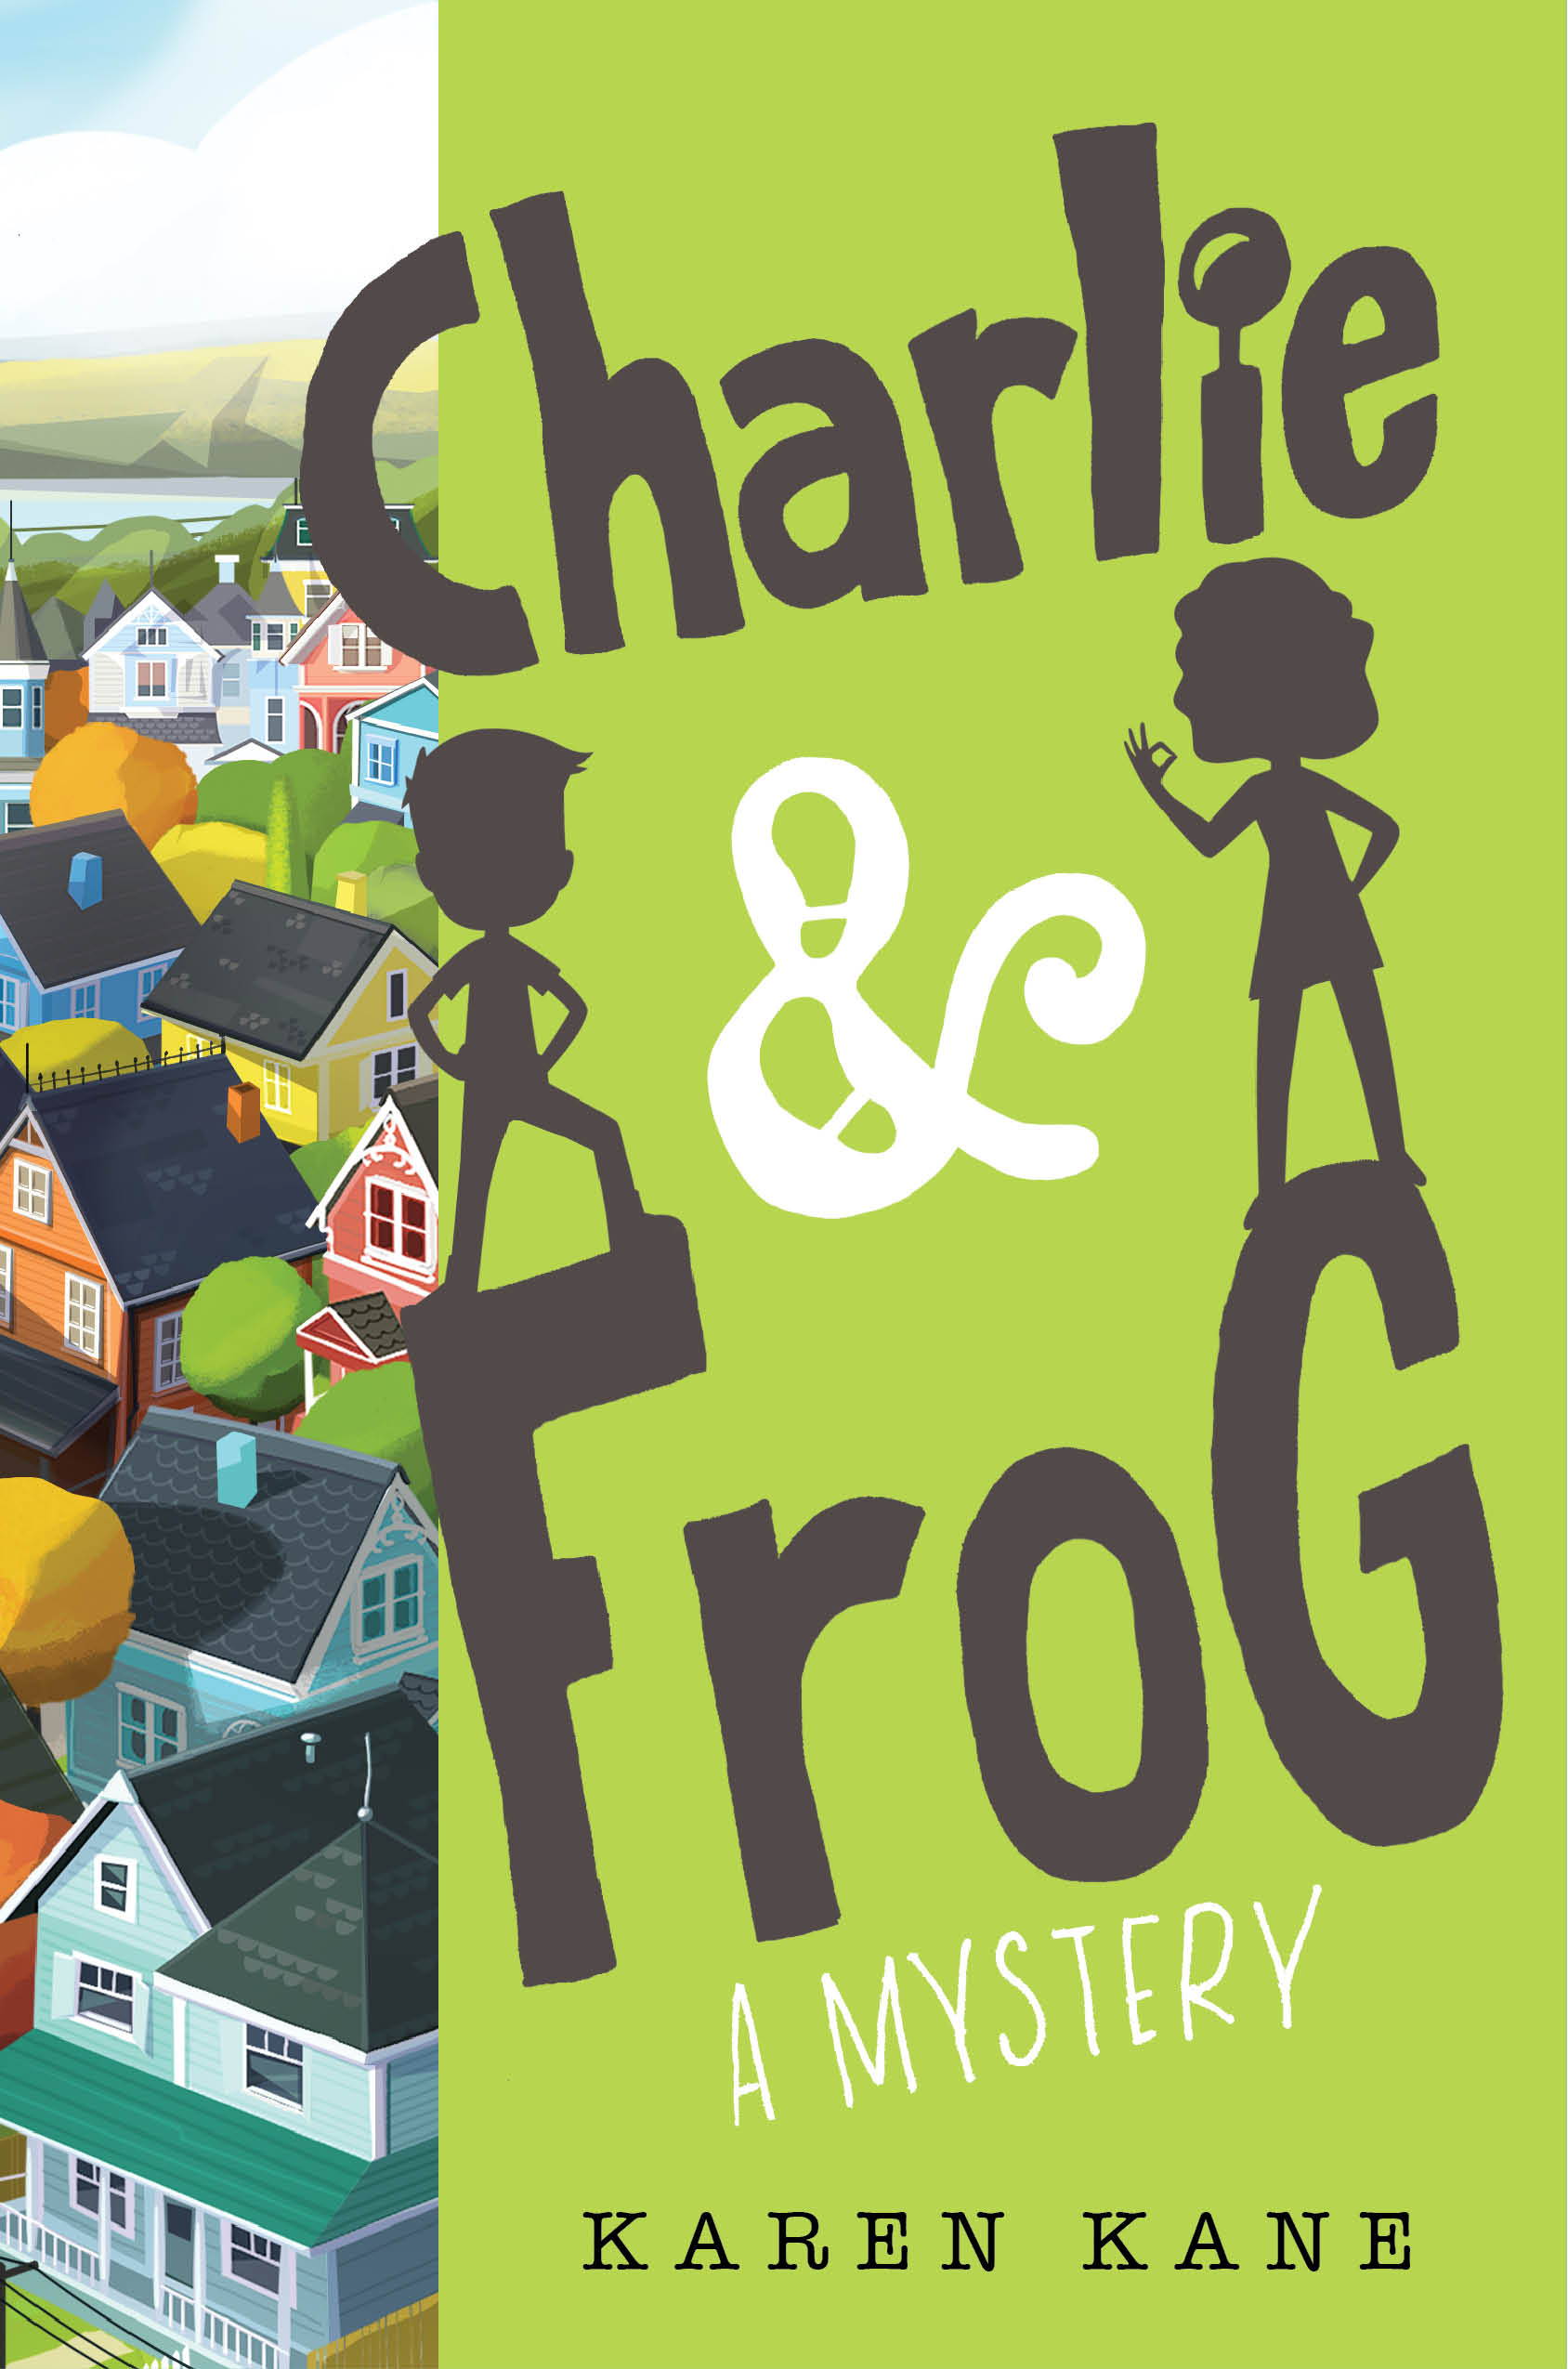 CharlieandFrog_frontcover.jpg